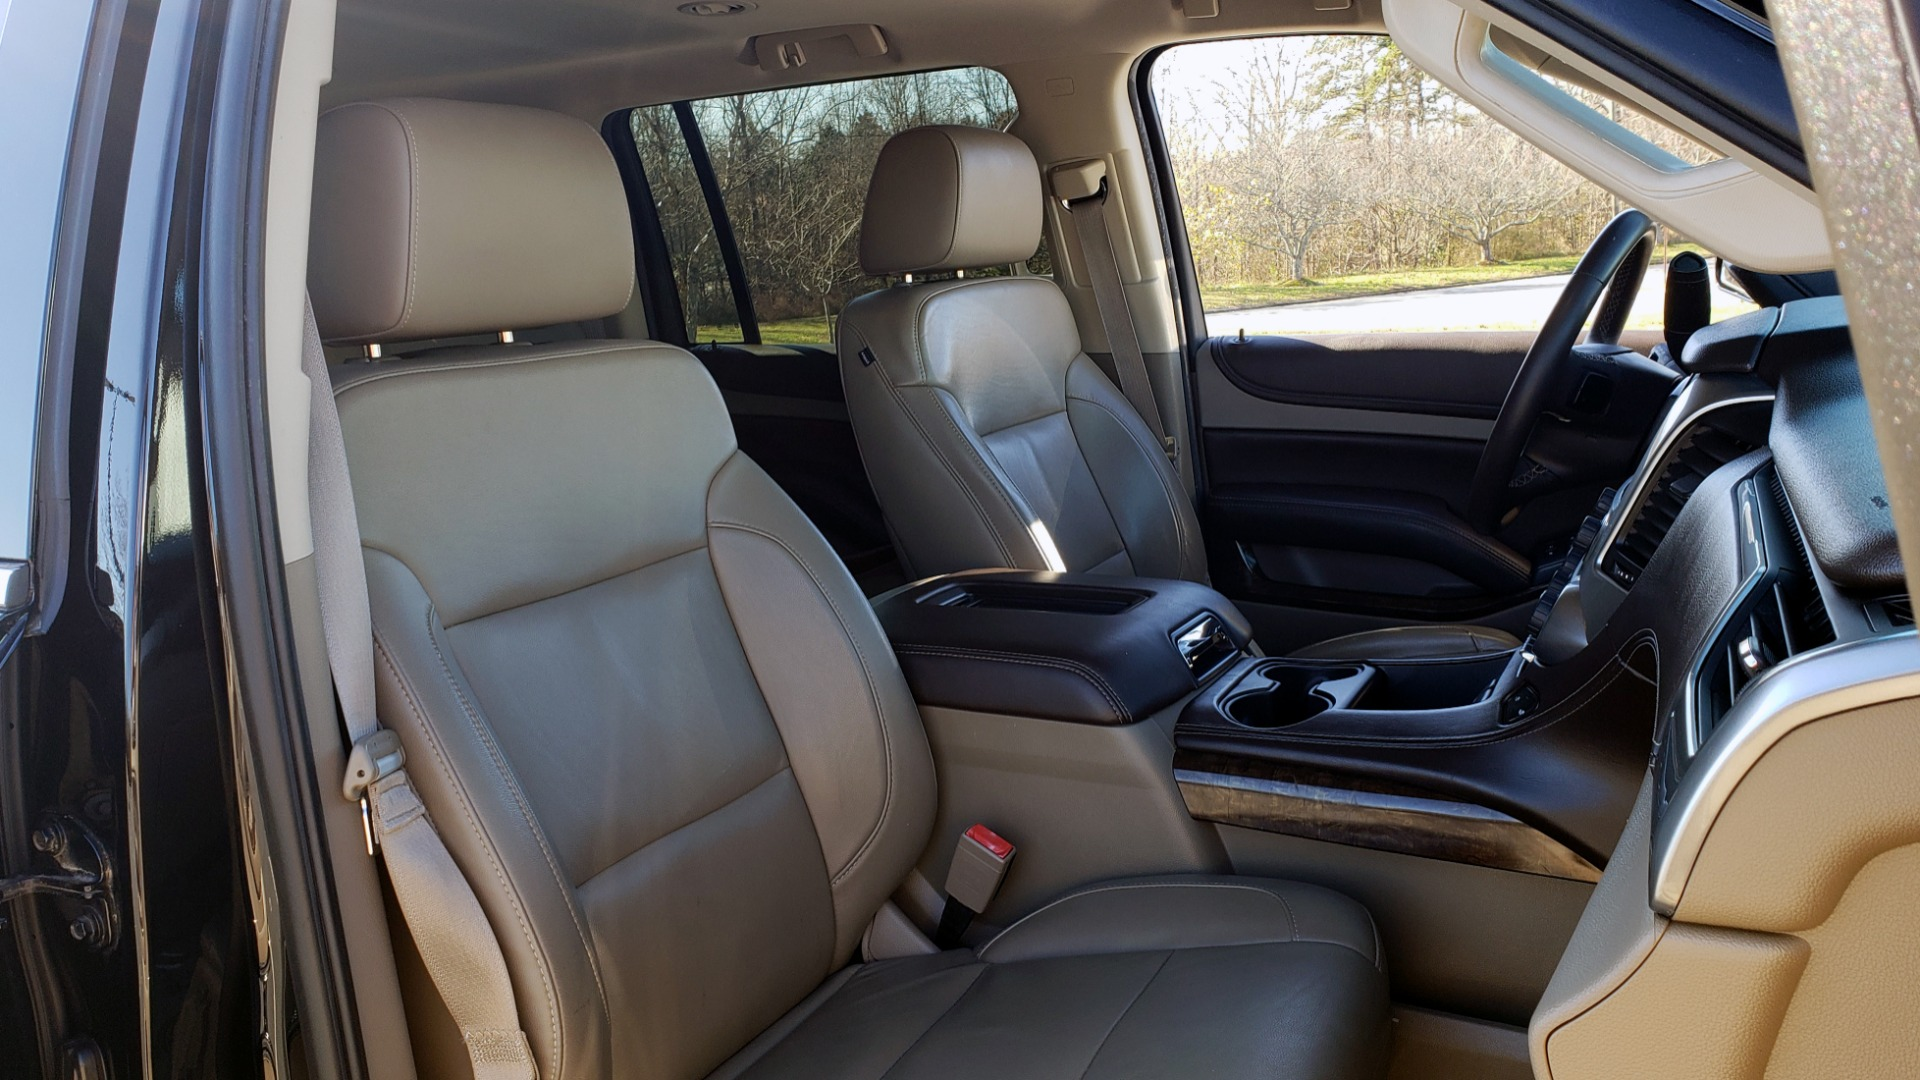 Used 2015 Chevrolet SUBURBAN LT 2WD / NAV / LEATHER / BOSE / 3-ROW / REARVIEW for sale Sold at Formula Imports in Charlotte NC 28227 72